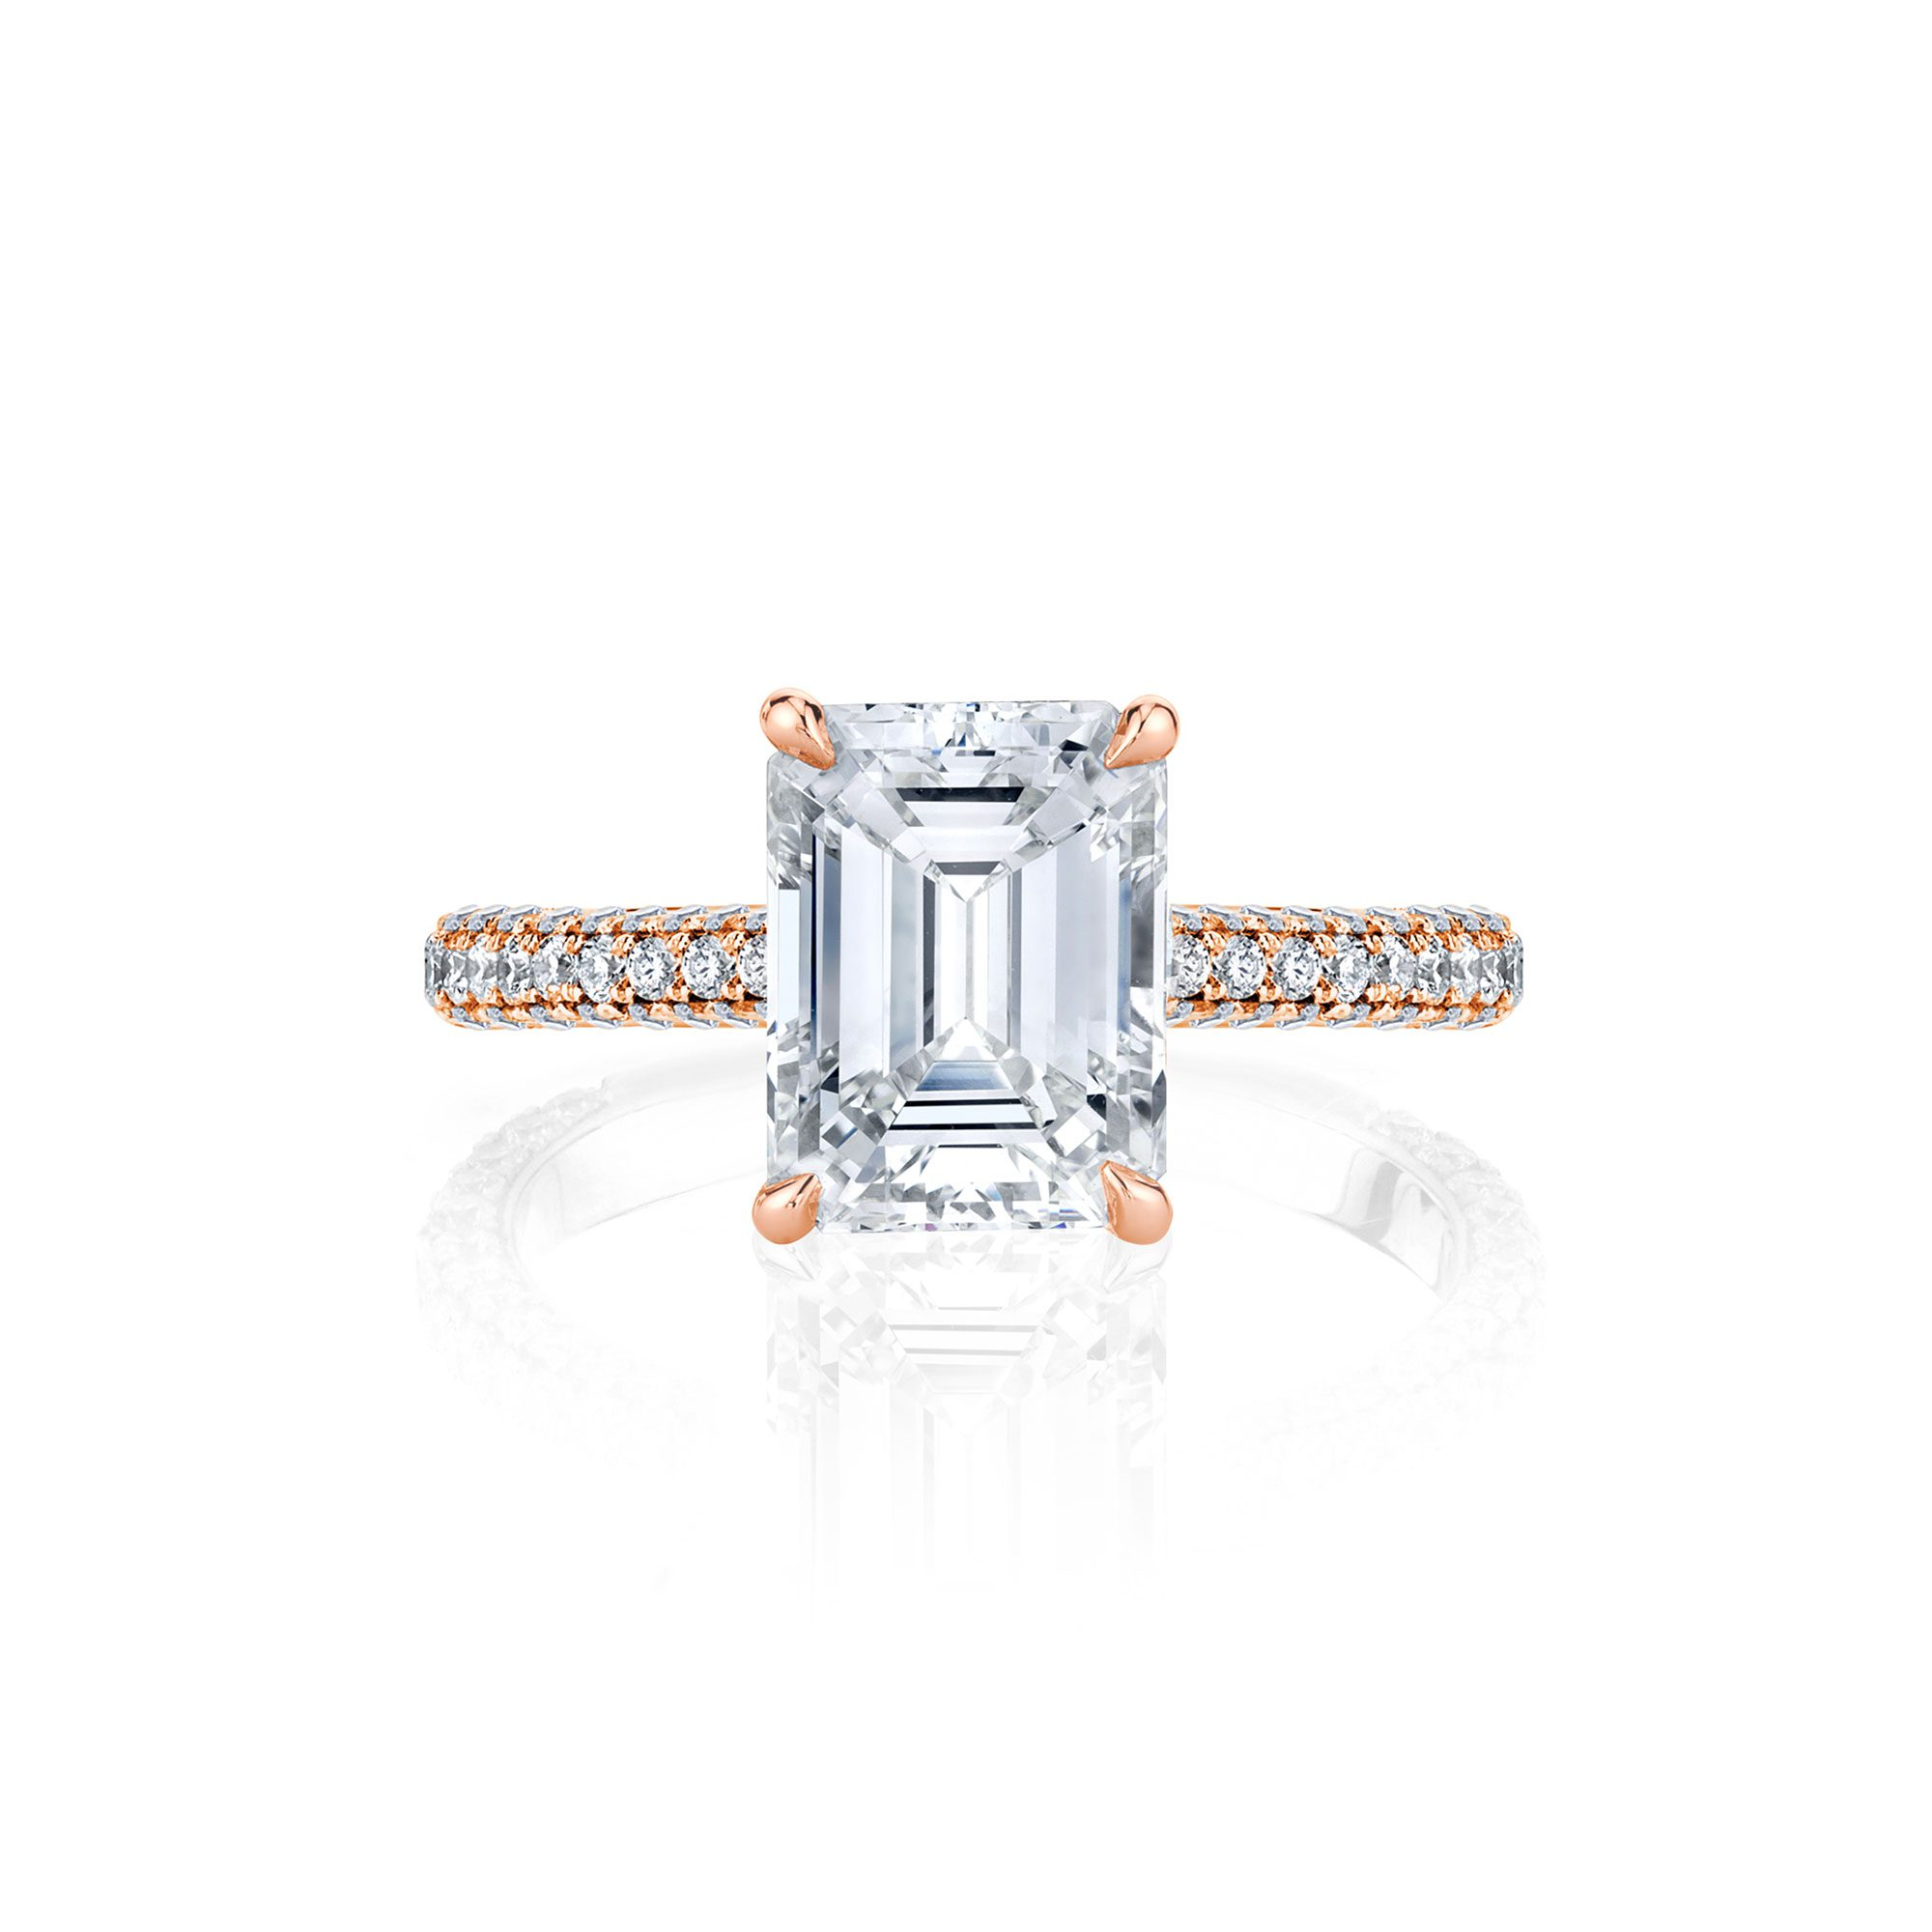 Jacqueline Emerald Cut Diamond Solitaire Engagement Ring and Pavé Band in Rose Gold